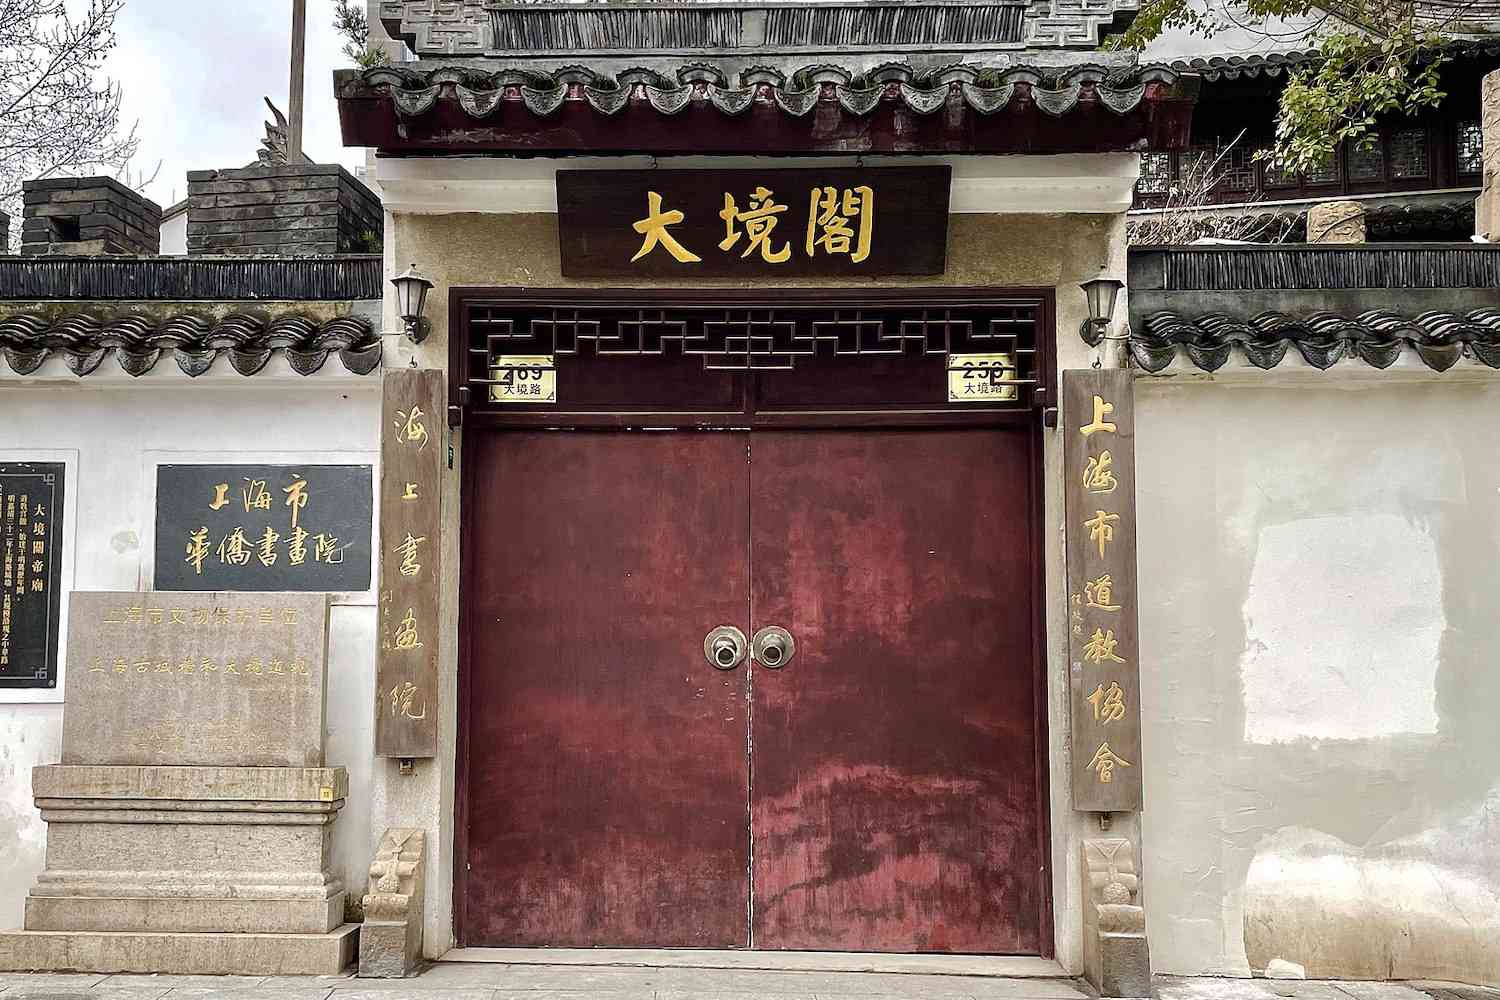 The main entrance to the Dajing Ge Pavilion in Shanghai, China